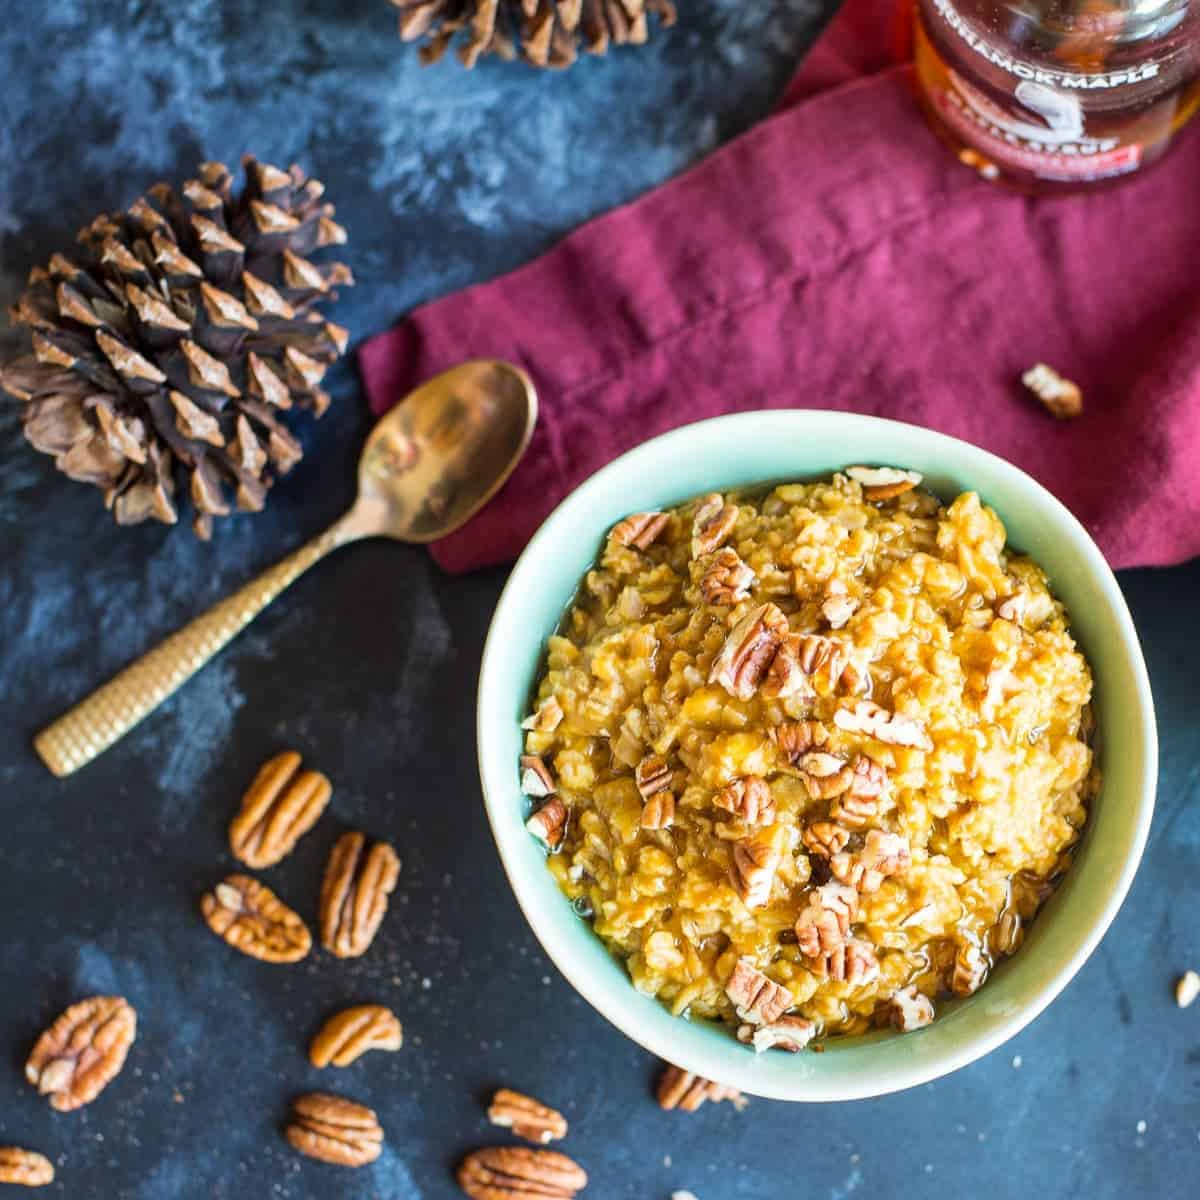 Spiced Pumpkin Oatmeal closer